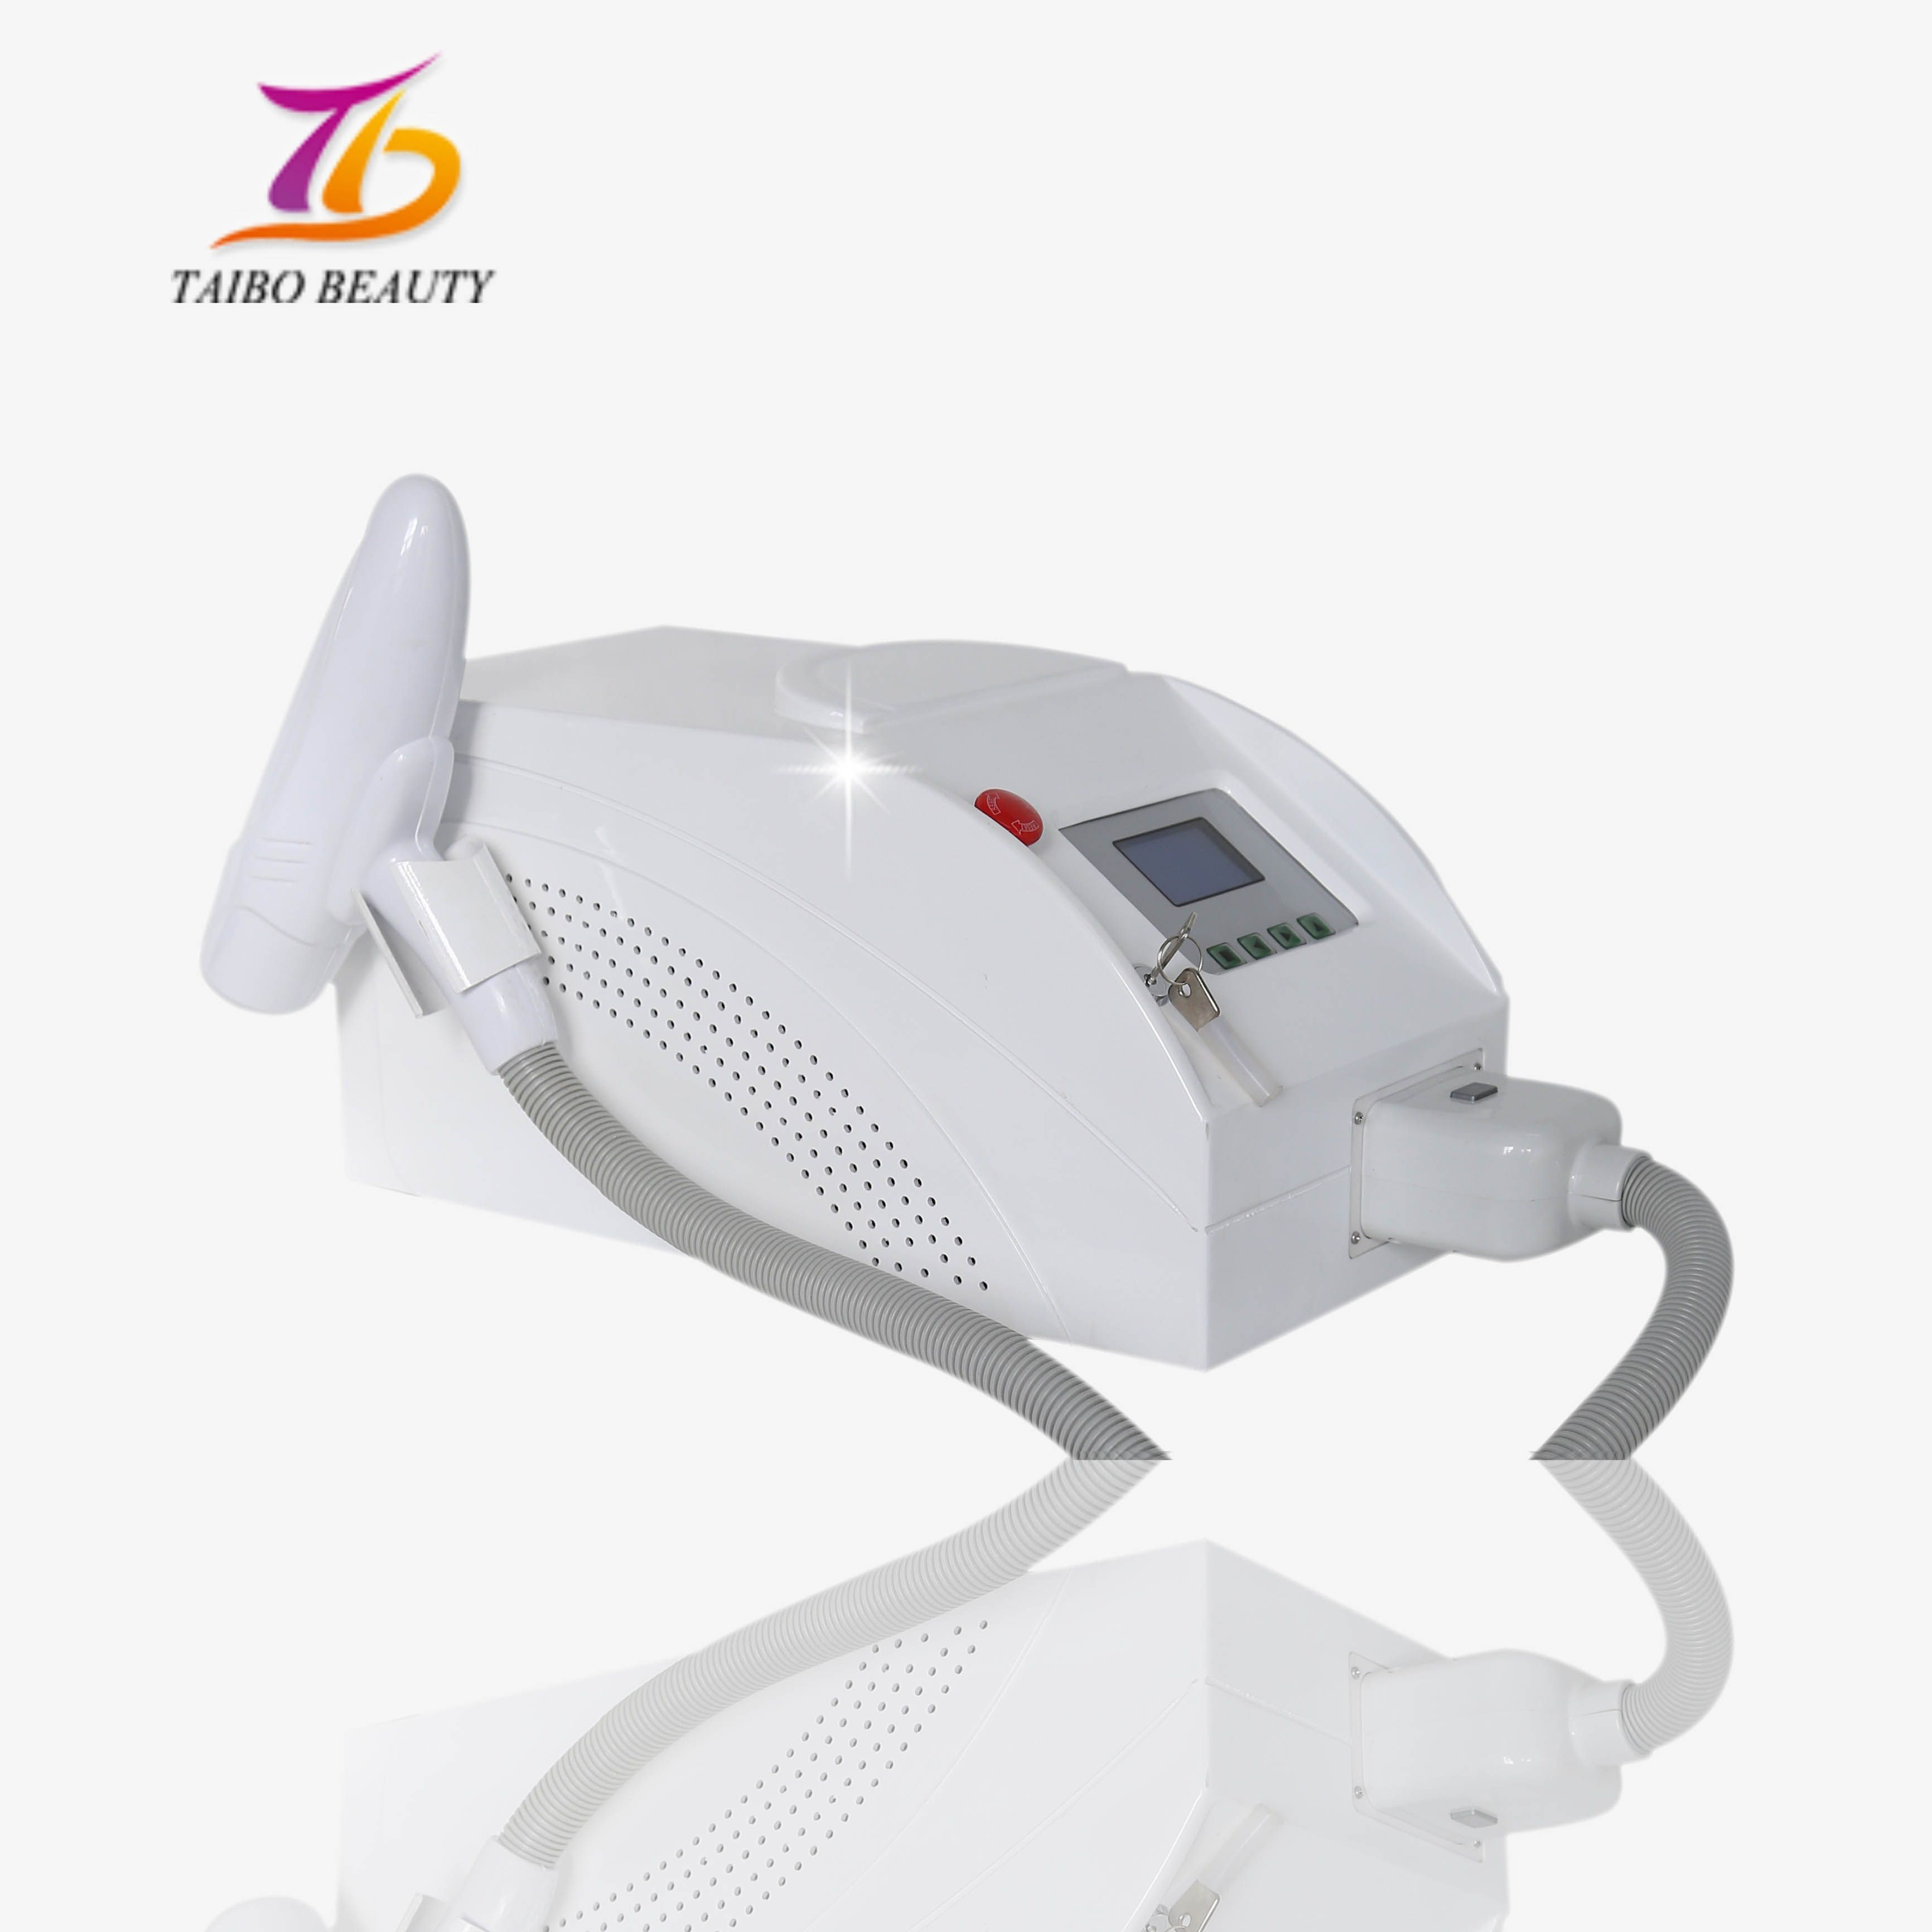 portable nd yag laser tattoo removal machine Pigmented